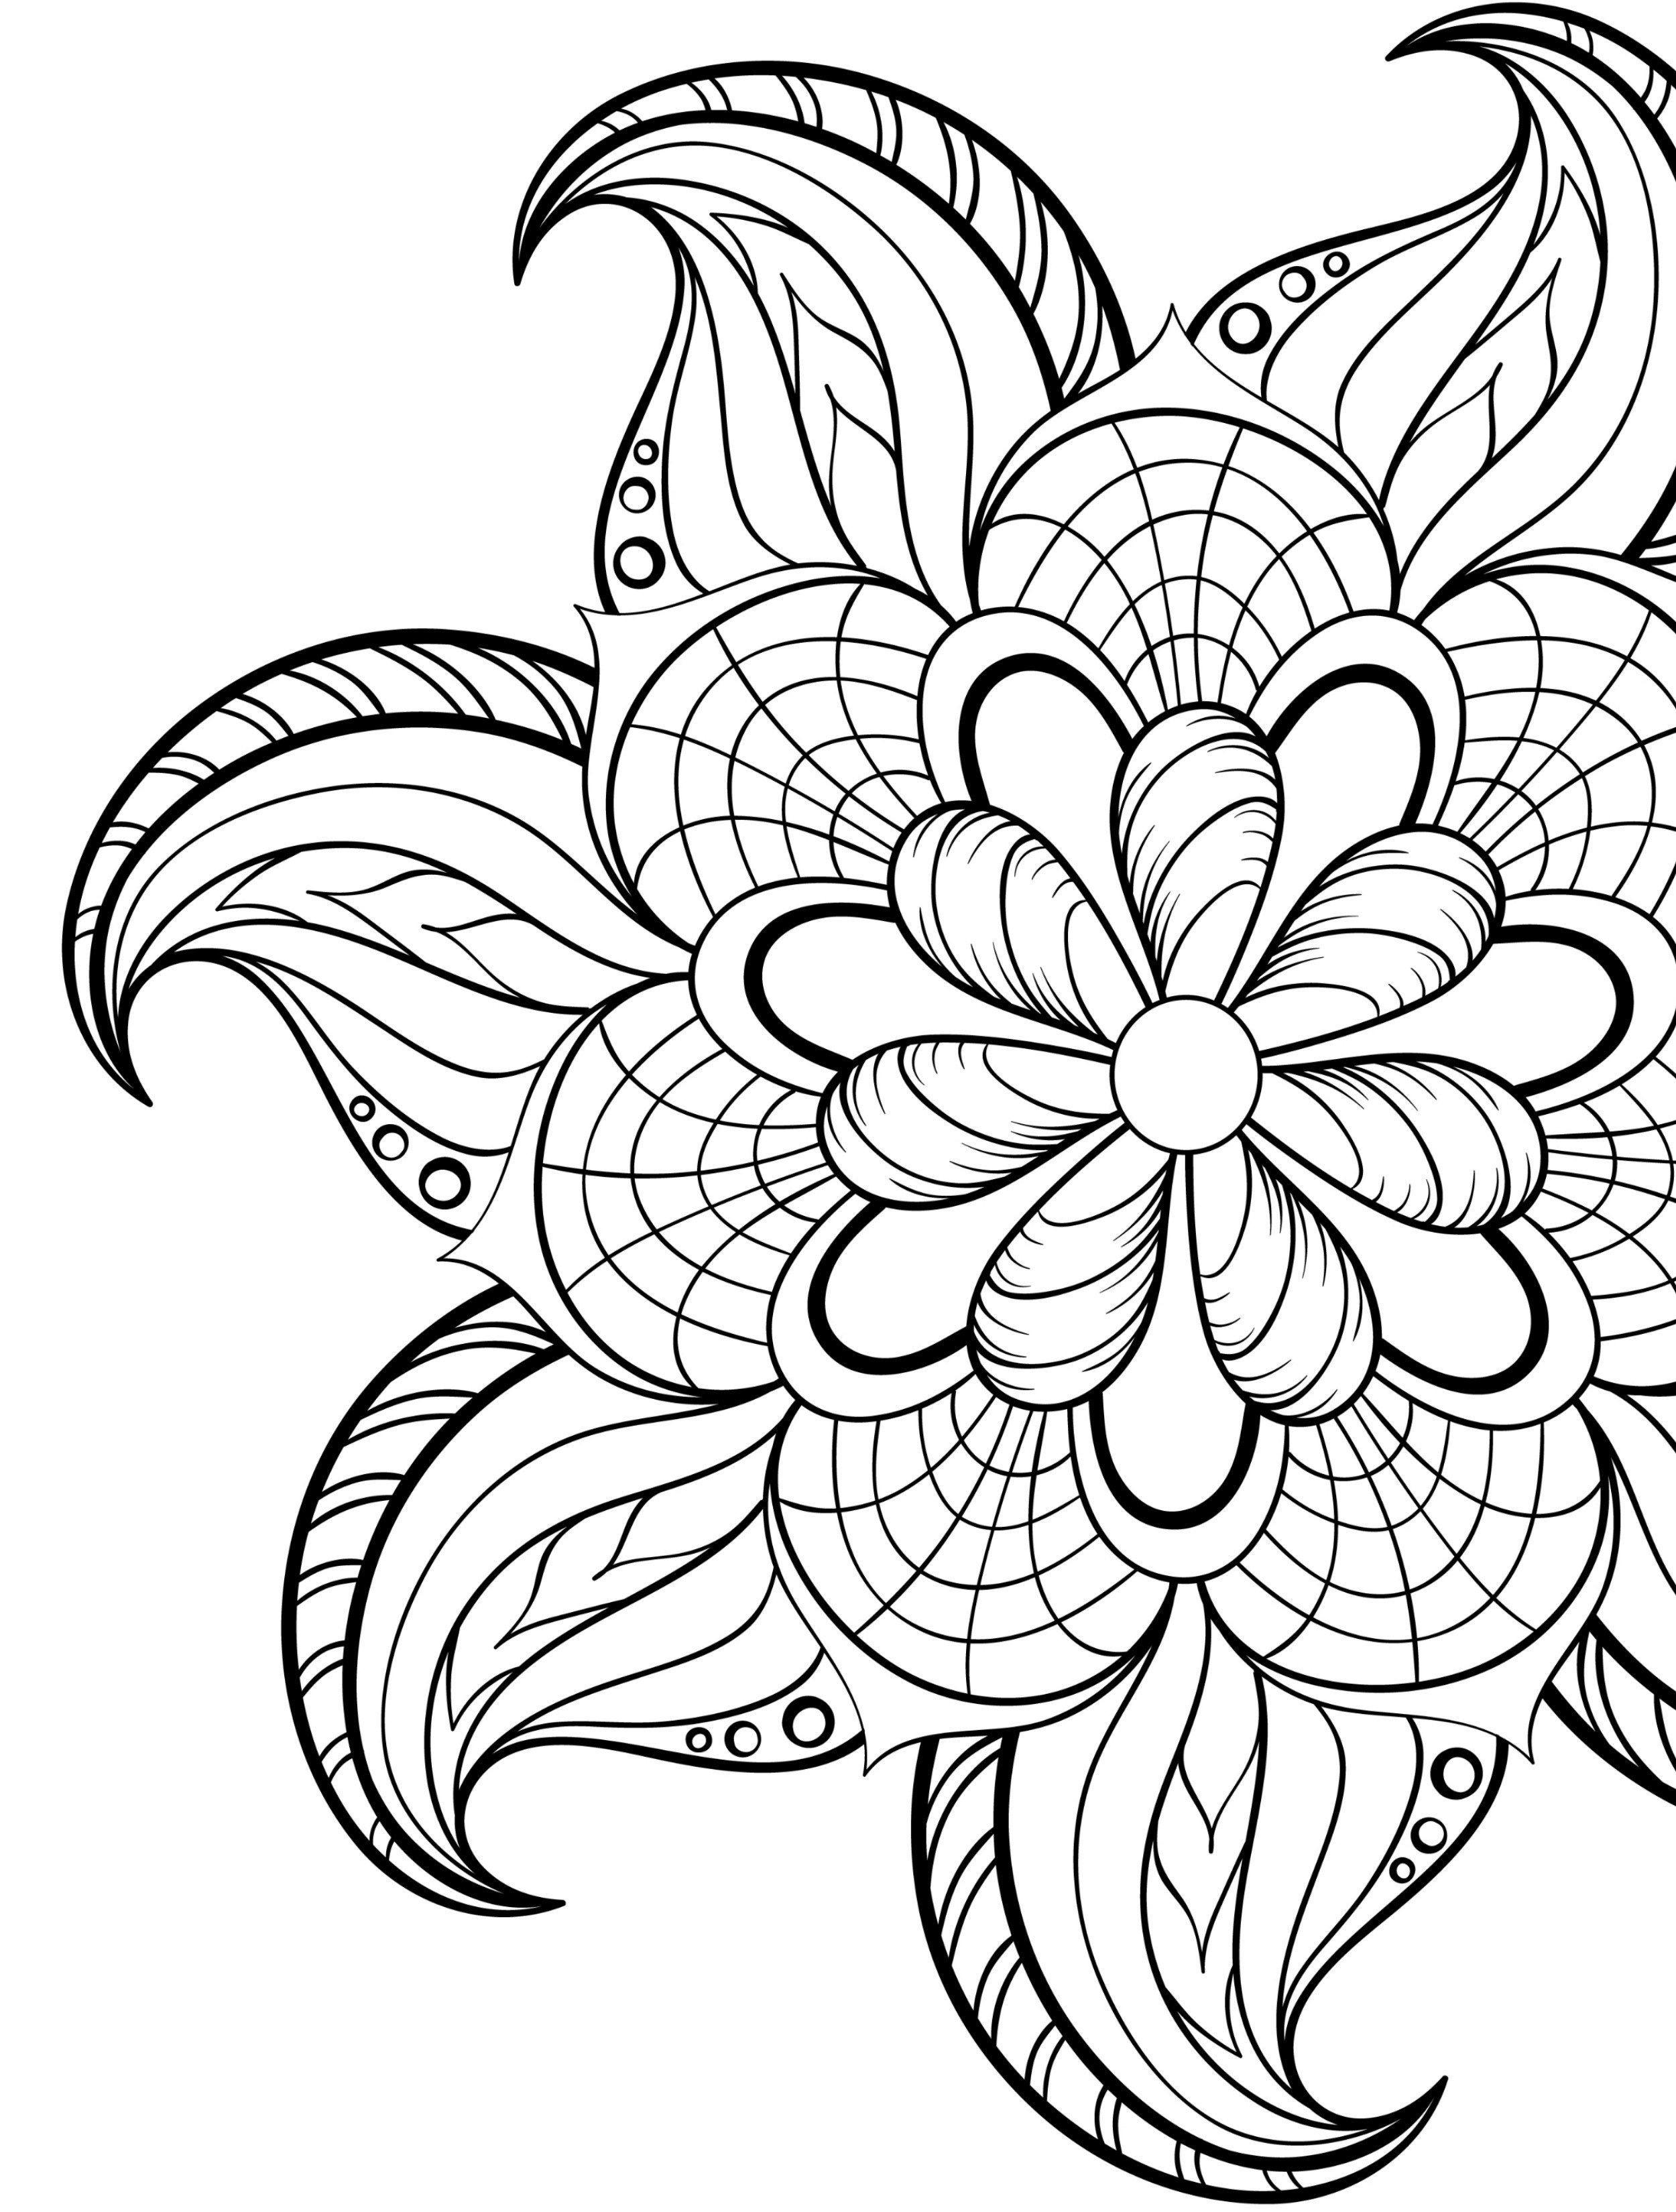 20 Geous Free Printable Adult Coloring Pages